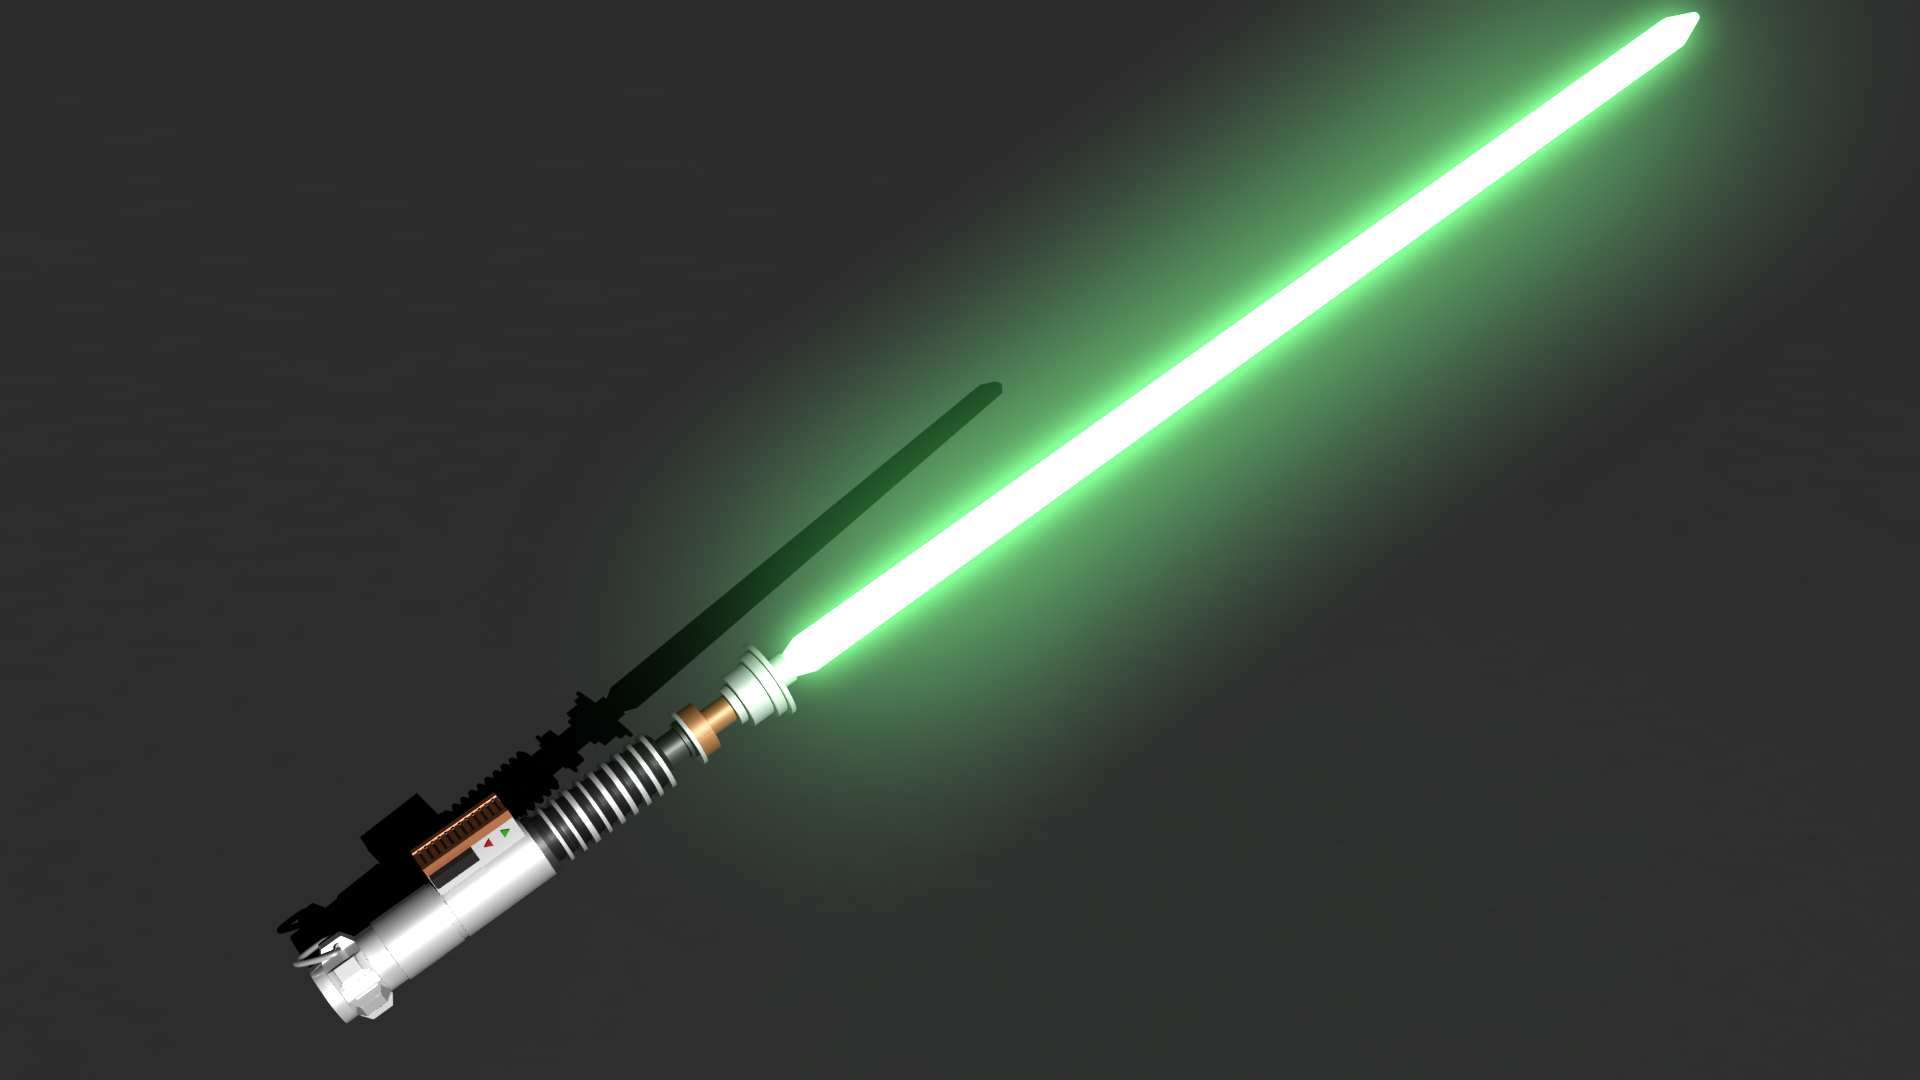 Luke Skywalker Lightsaber Ignited By Adrian1997 On Deviantart